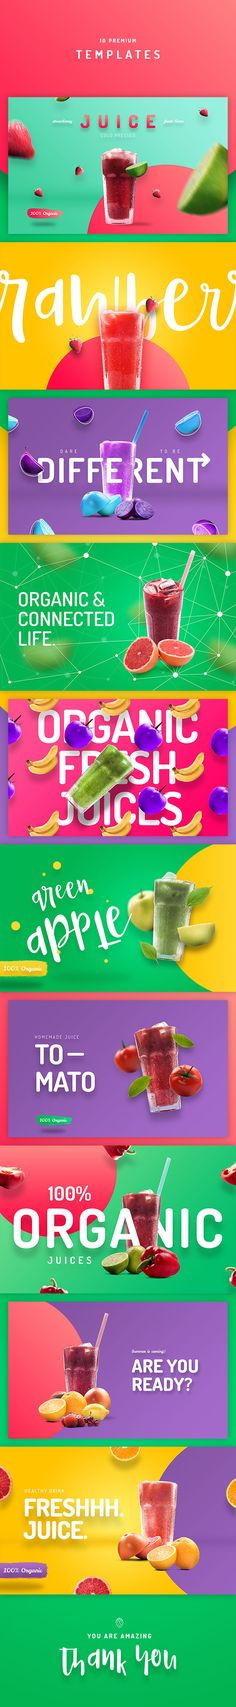 Buy Organic Juice - 10 Premium Hero Image Templates by CreativeForm on GraphicRiver. Organic Juice Premium Templates are set of 10 beautiful hi-res templates for print or web. Healthy Fruit Desserts, Fruit Juice Recipes, Healthy Food, Smoothies For Kids, Fruit Smoothies, New Fruit, Fresh Fruit, Juice Store, Fruit Logo